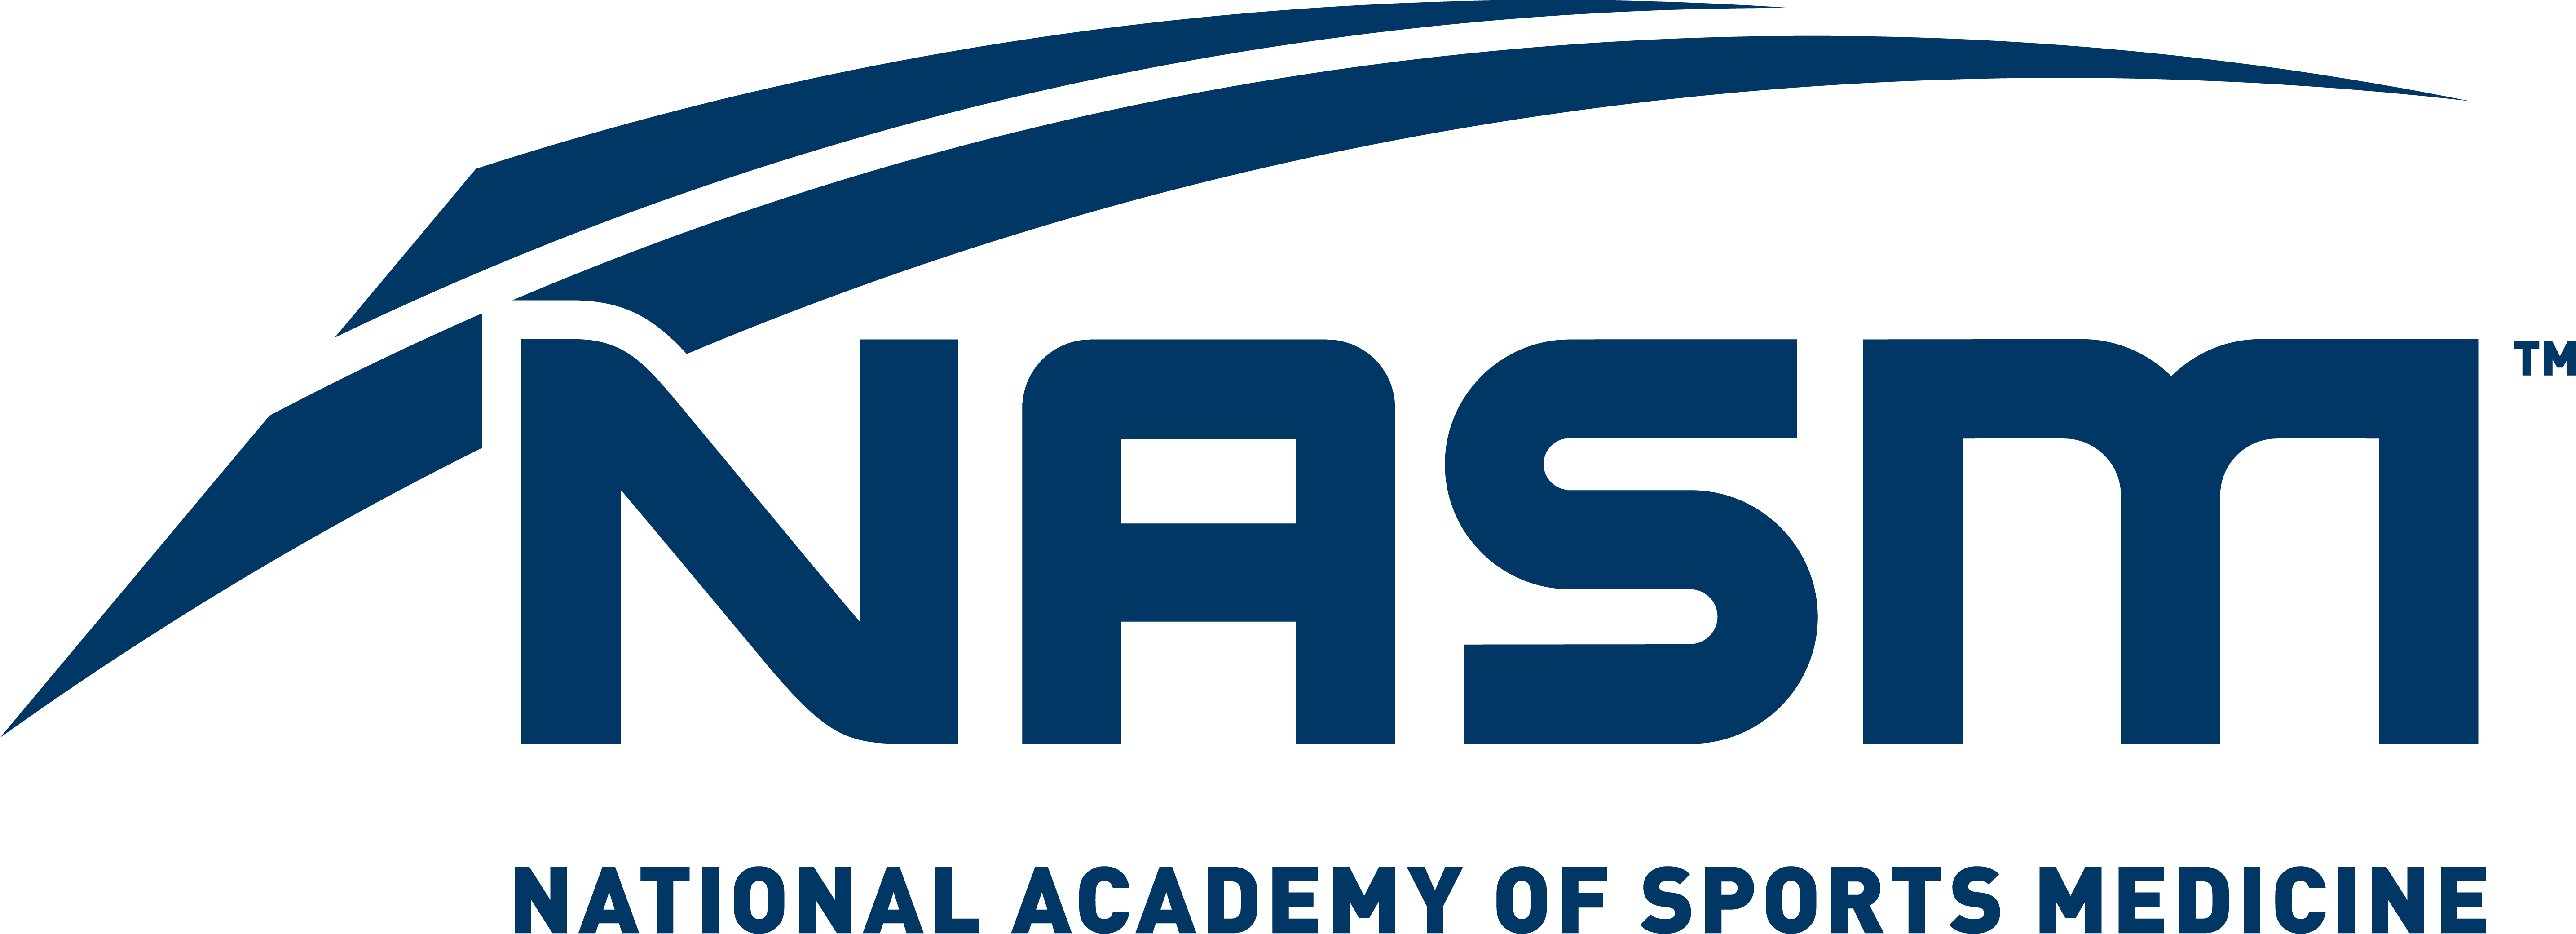 nasm_logo_blue_withtext